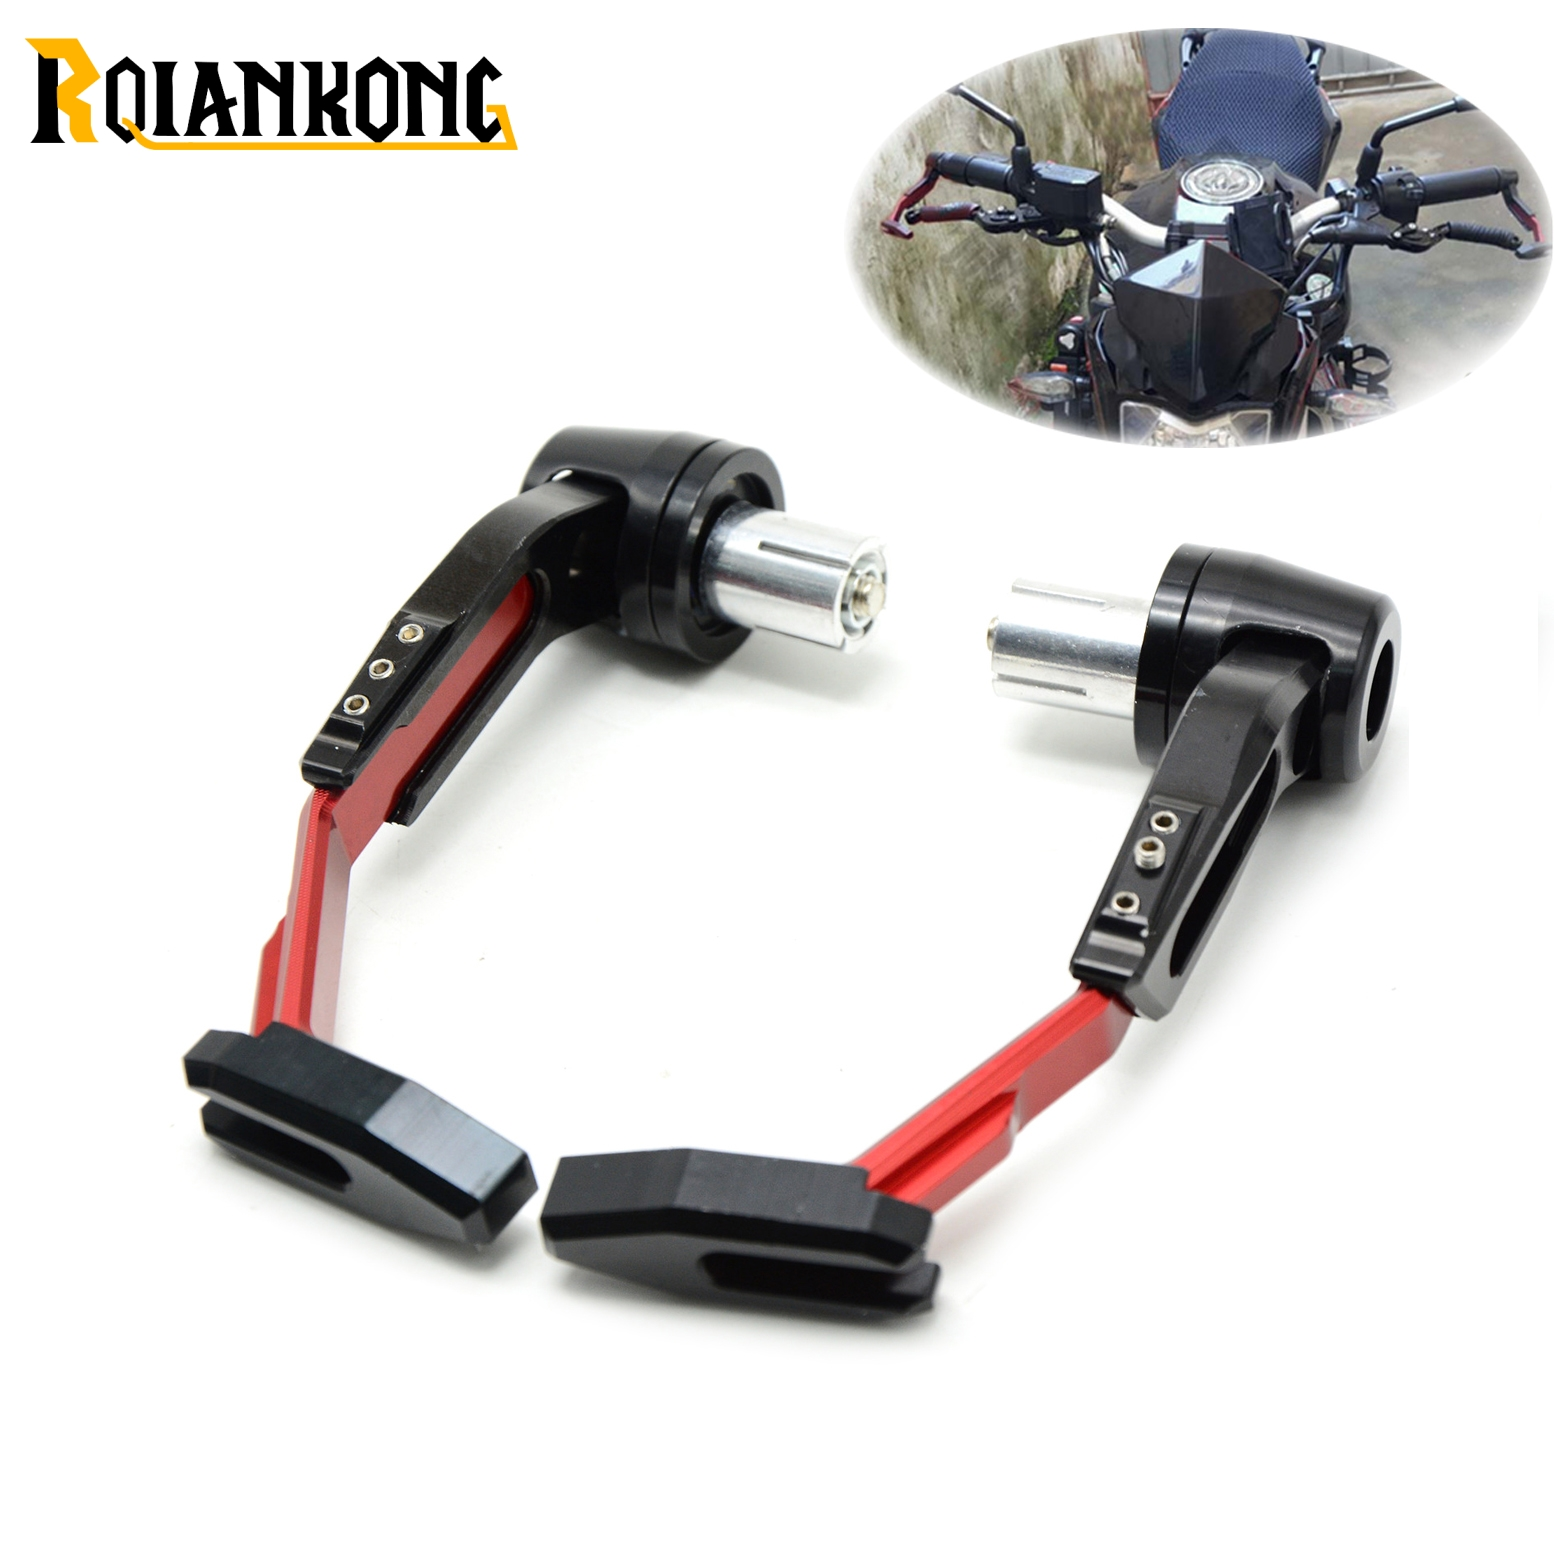 Universal 7/822mm Motorcycle Handlebar Clutch Brake Lever Protect Guard for BMW F650GS F700GS F800GS F800GT F800R F800S F800ST bjmoto universal 7 8 22mm handlebar brake clutch protect motorcycle lever guard proguard for bmw hp4 r1200rs s1000rr k1300gt